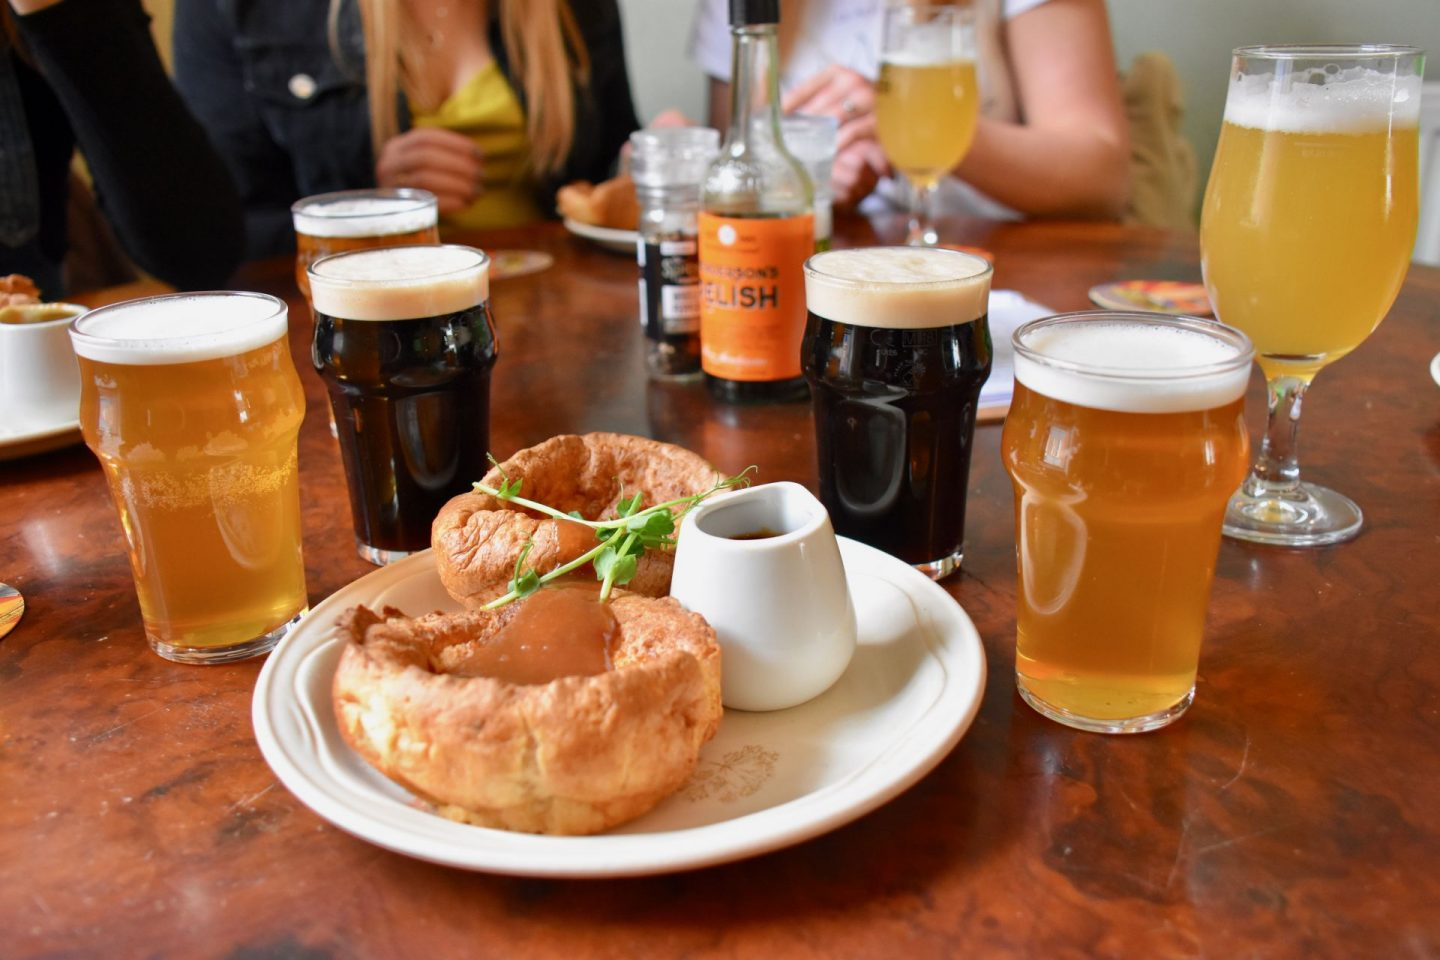 things to do in leeds city centre - an image of two yorkshire puddings on a plate, with local beer in the background